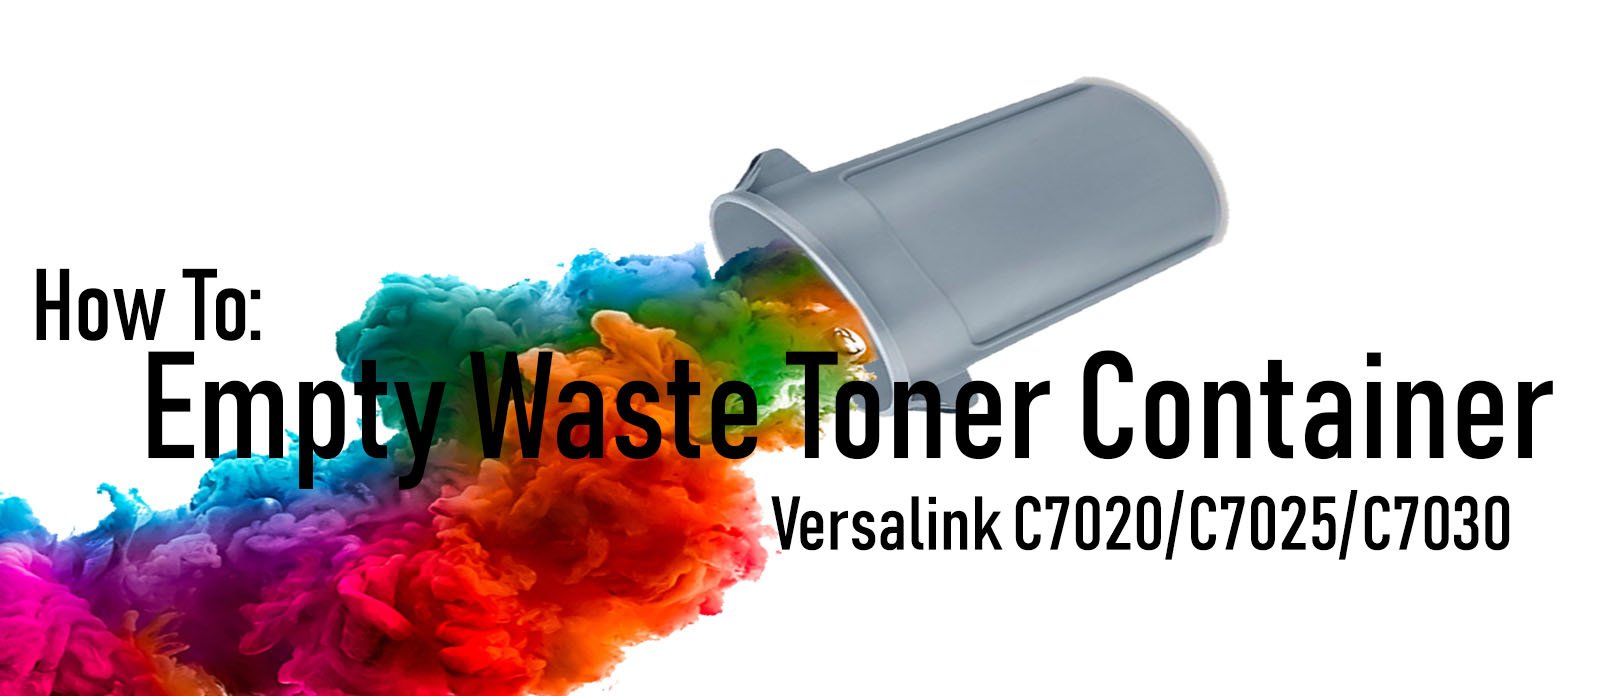 Empty Your Xerox Waste Toner Container on a Versalink